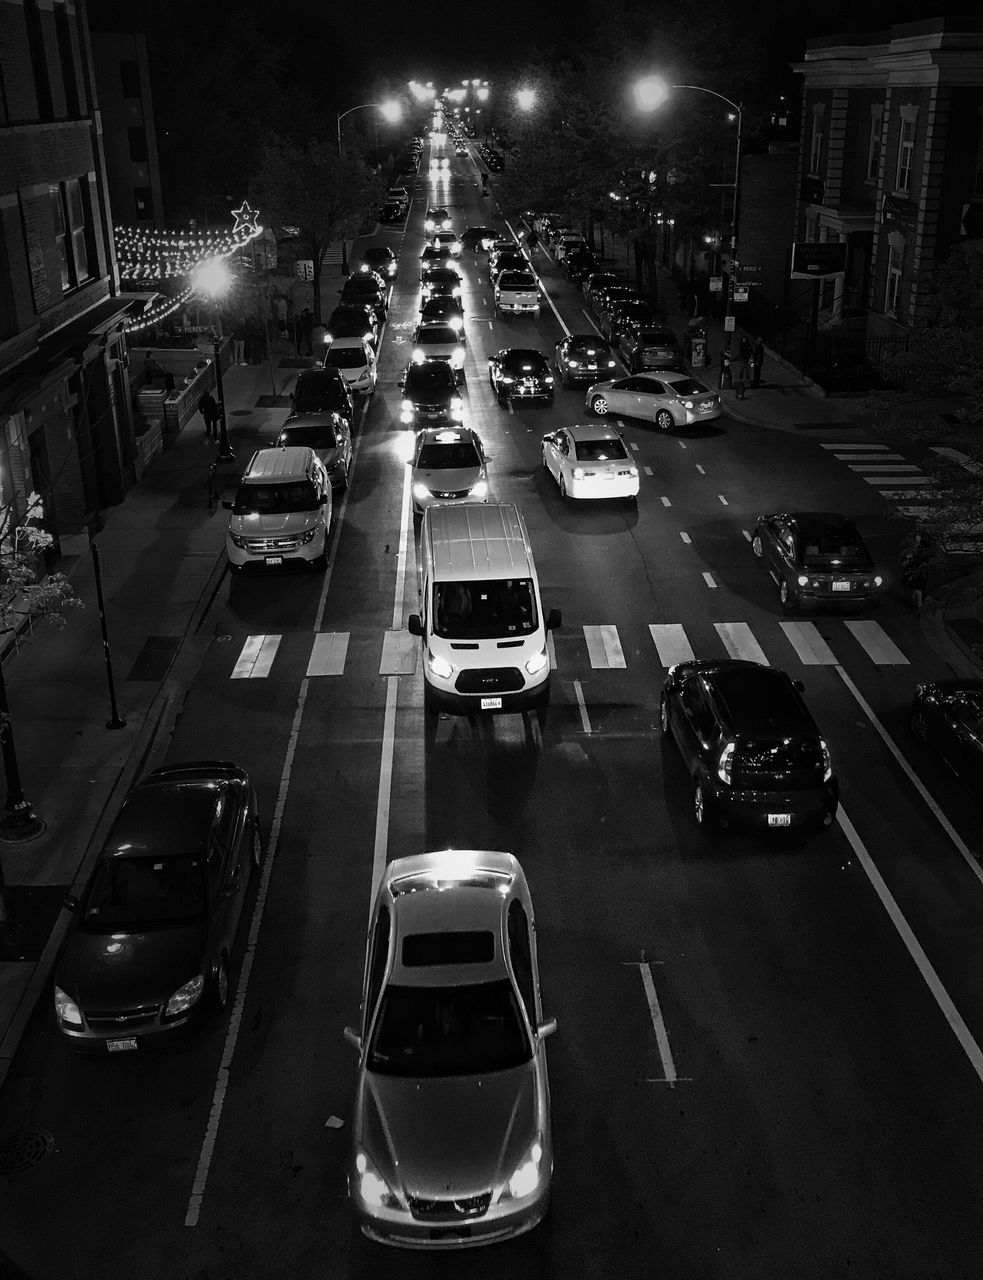 car, transportation, traffic, night, road, land vehicle, illuminated, street, high angle view, city, mode of transport, city street, outdoors, rush hour, no people, architecture, building exterior